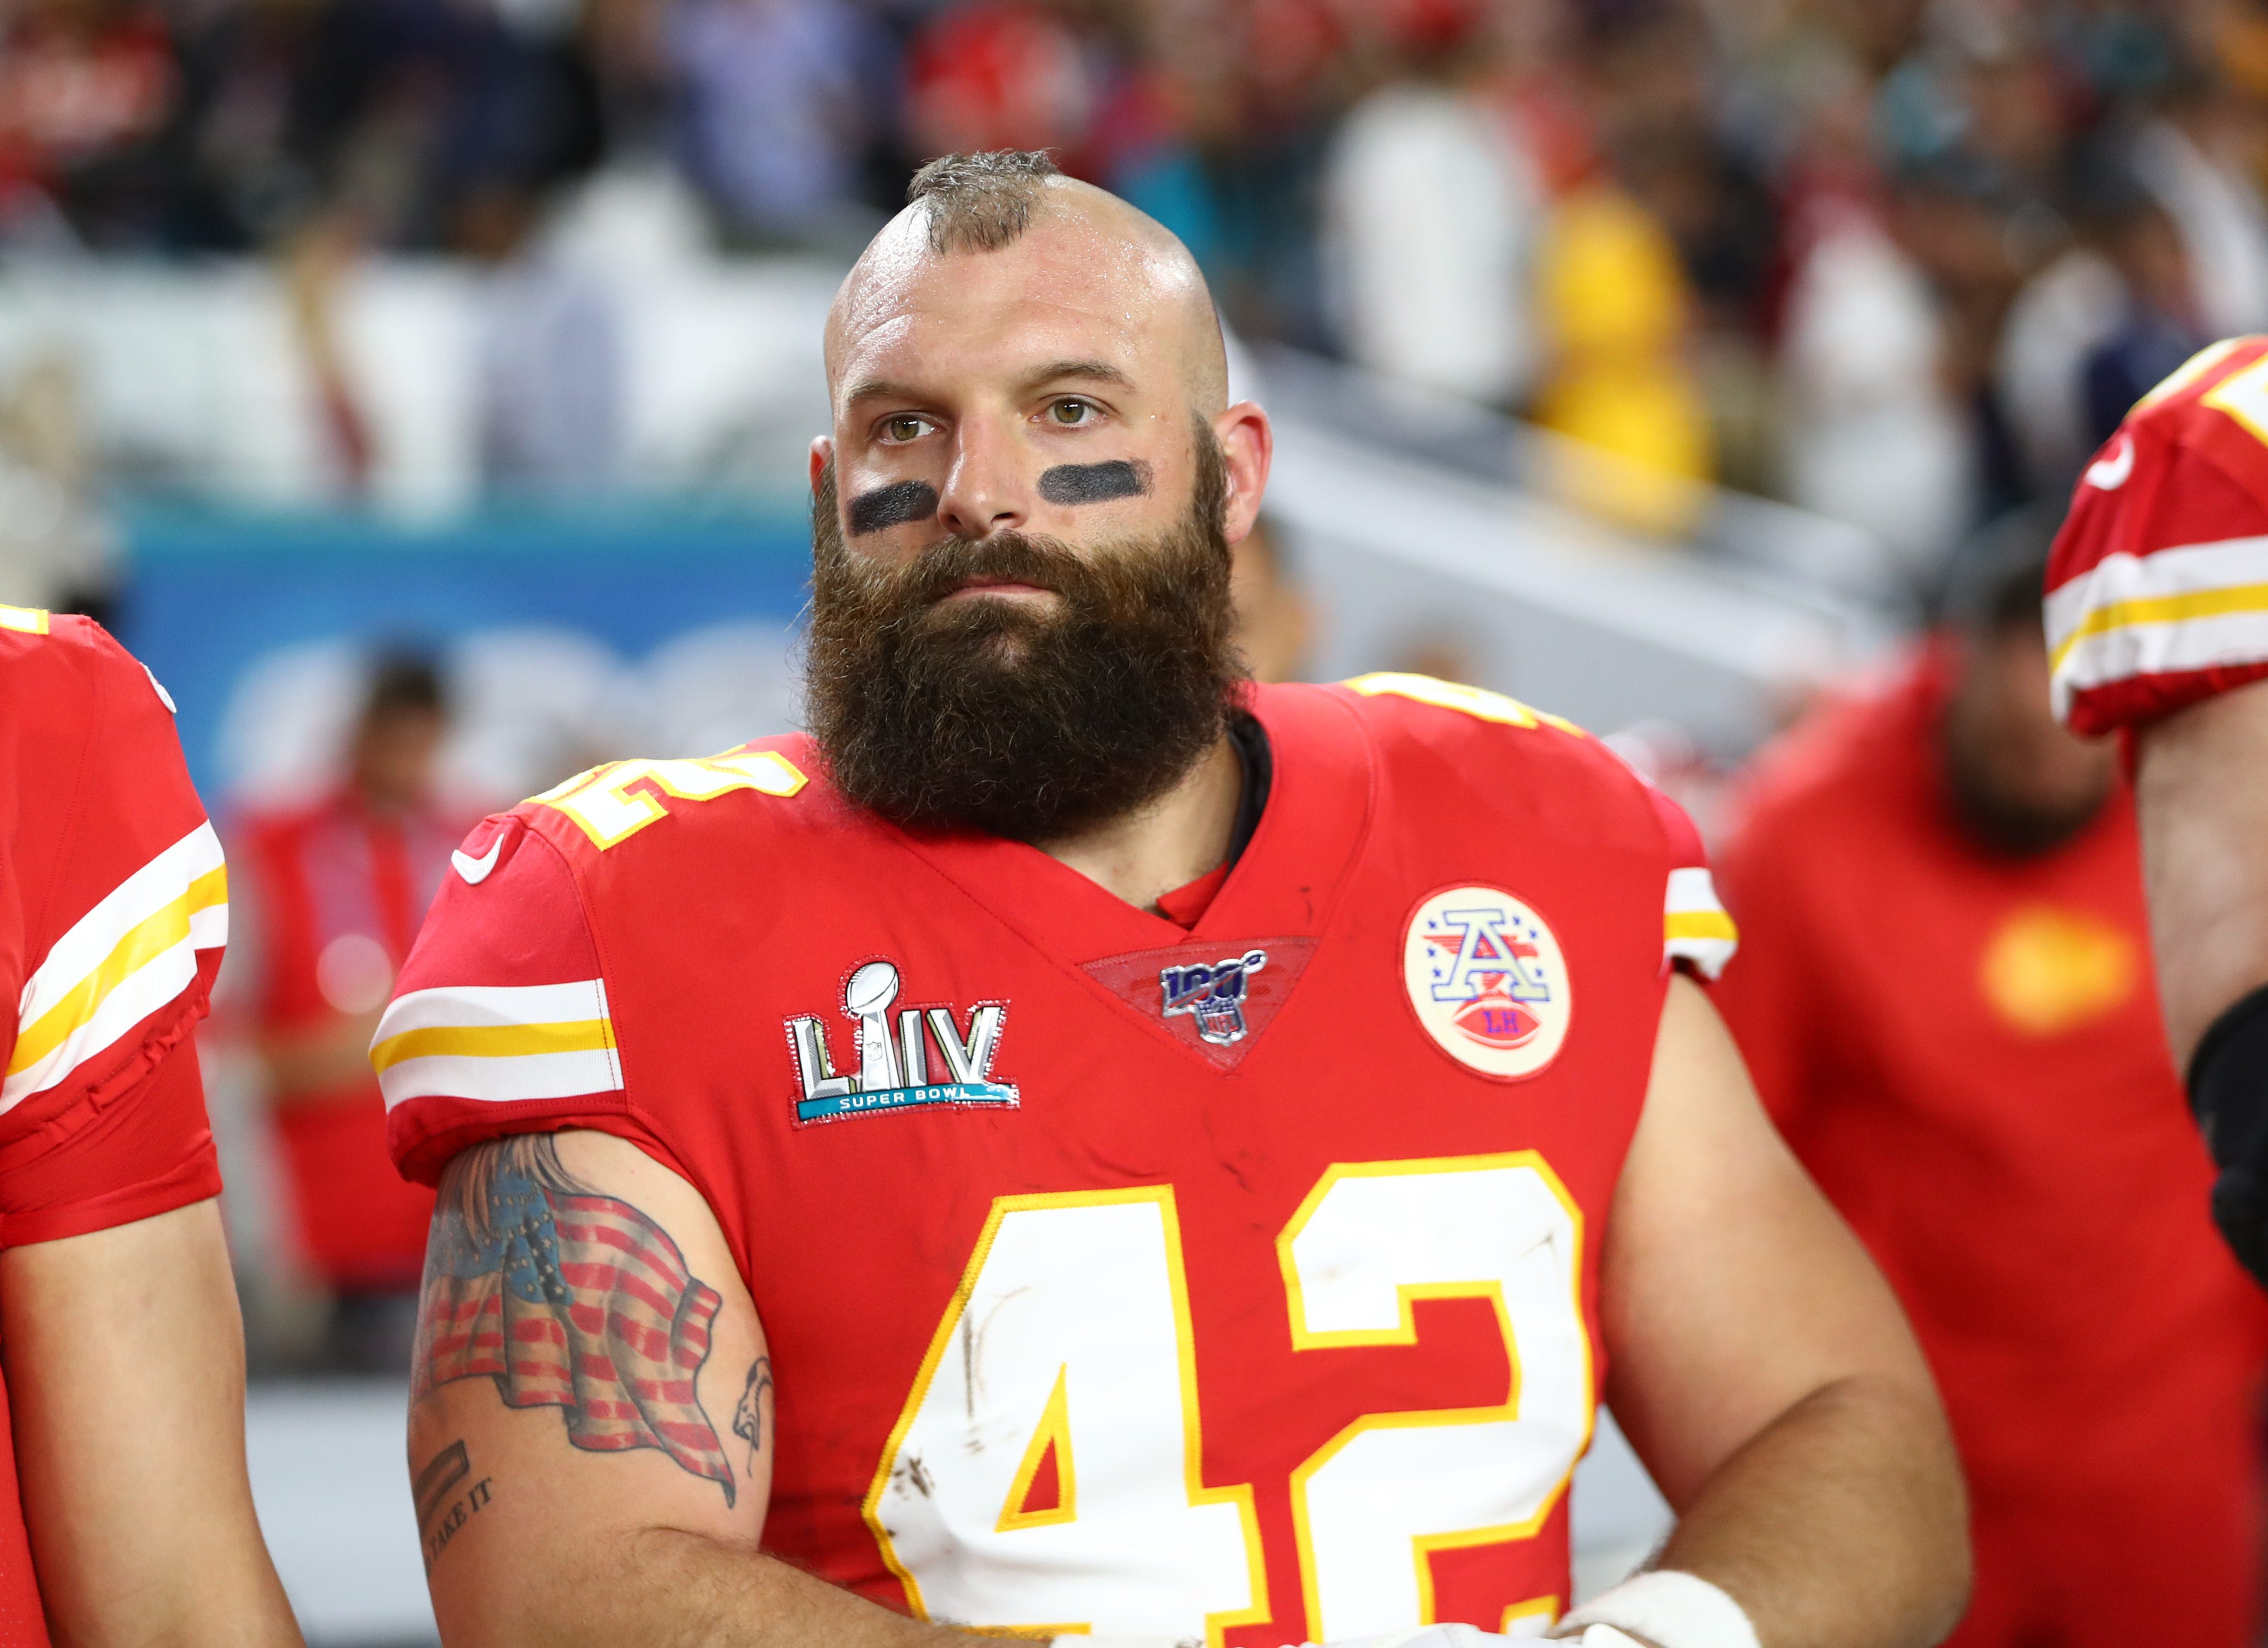 Retired NFL fullback Anthony Sherman compares COVID-19 vaccination wristbands to racial segregation